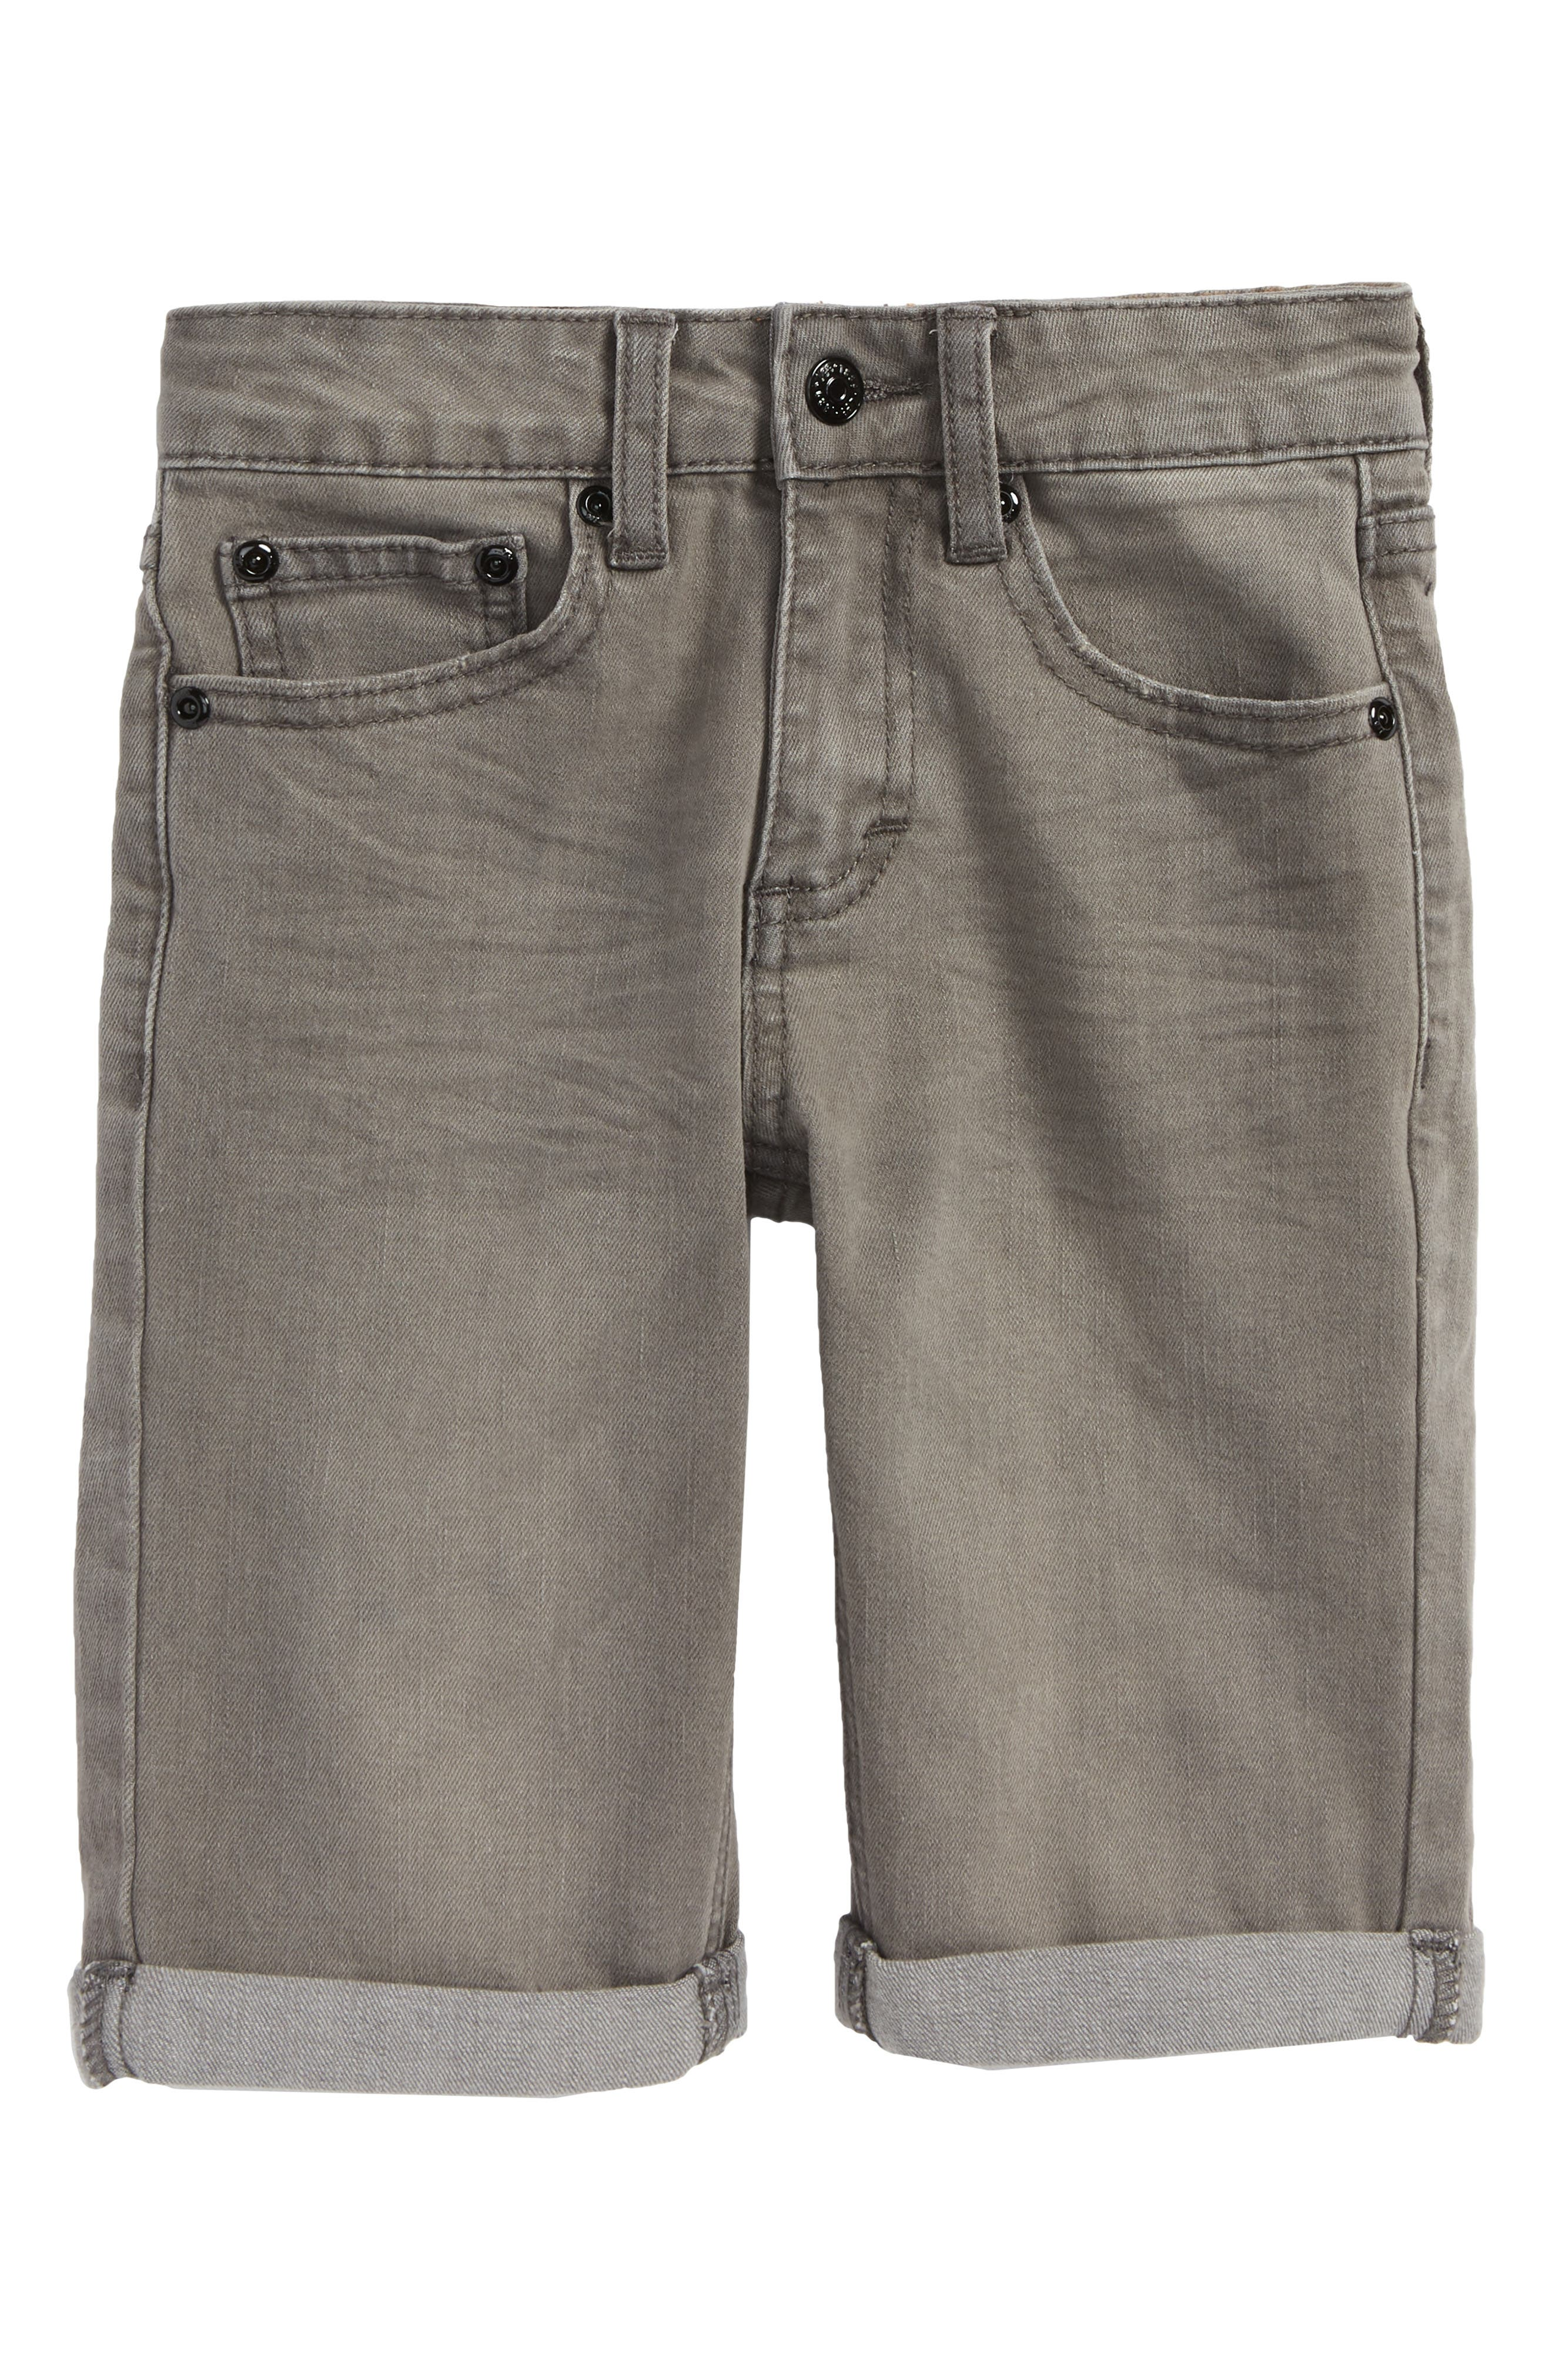 Lee Stretch Denim Roll Cuff Shorts (Toddler Boys & Little Boys)